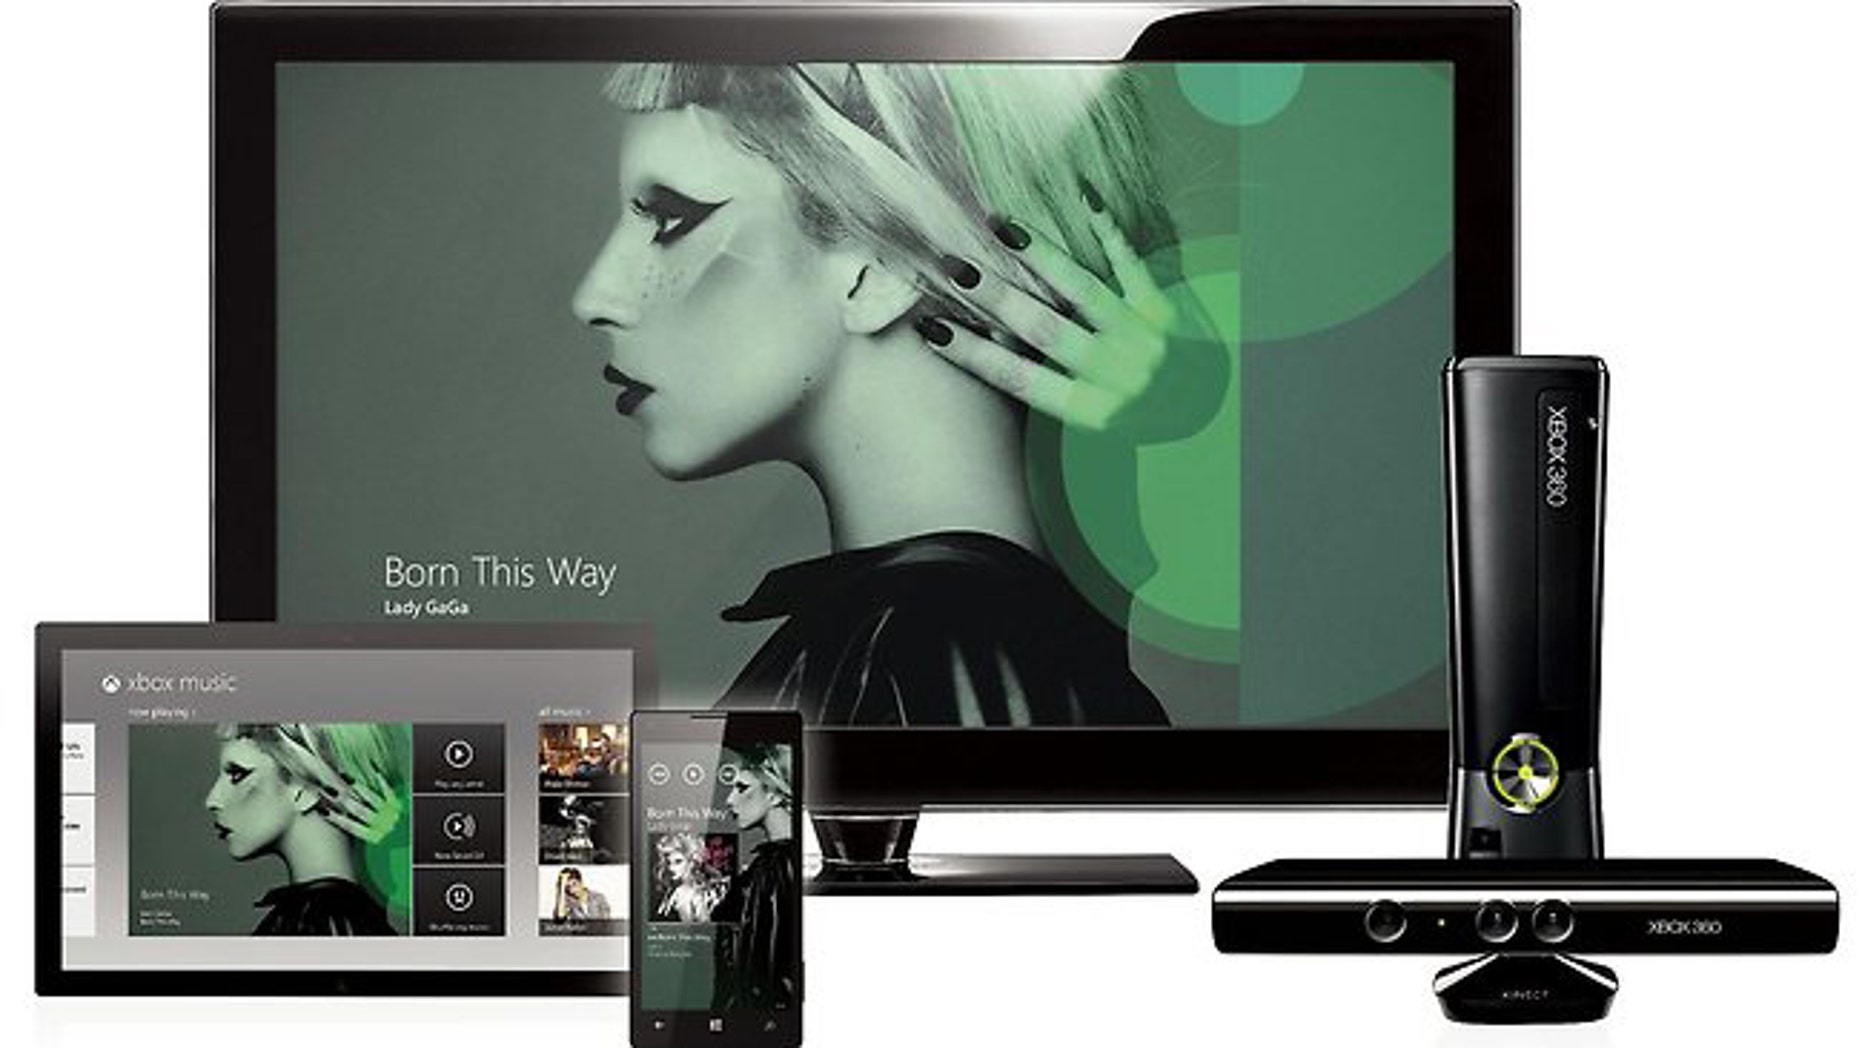 You can access your Xbox 360 music through different devices.